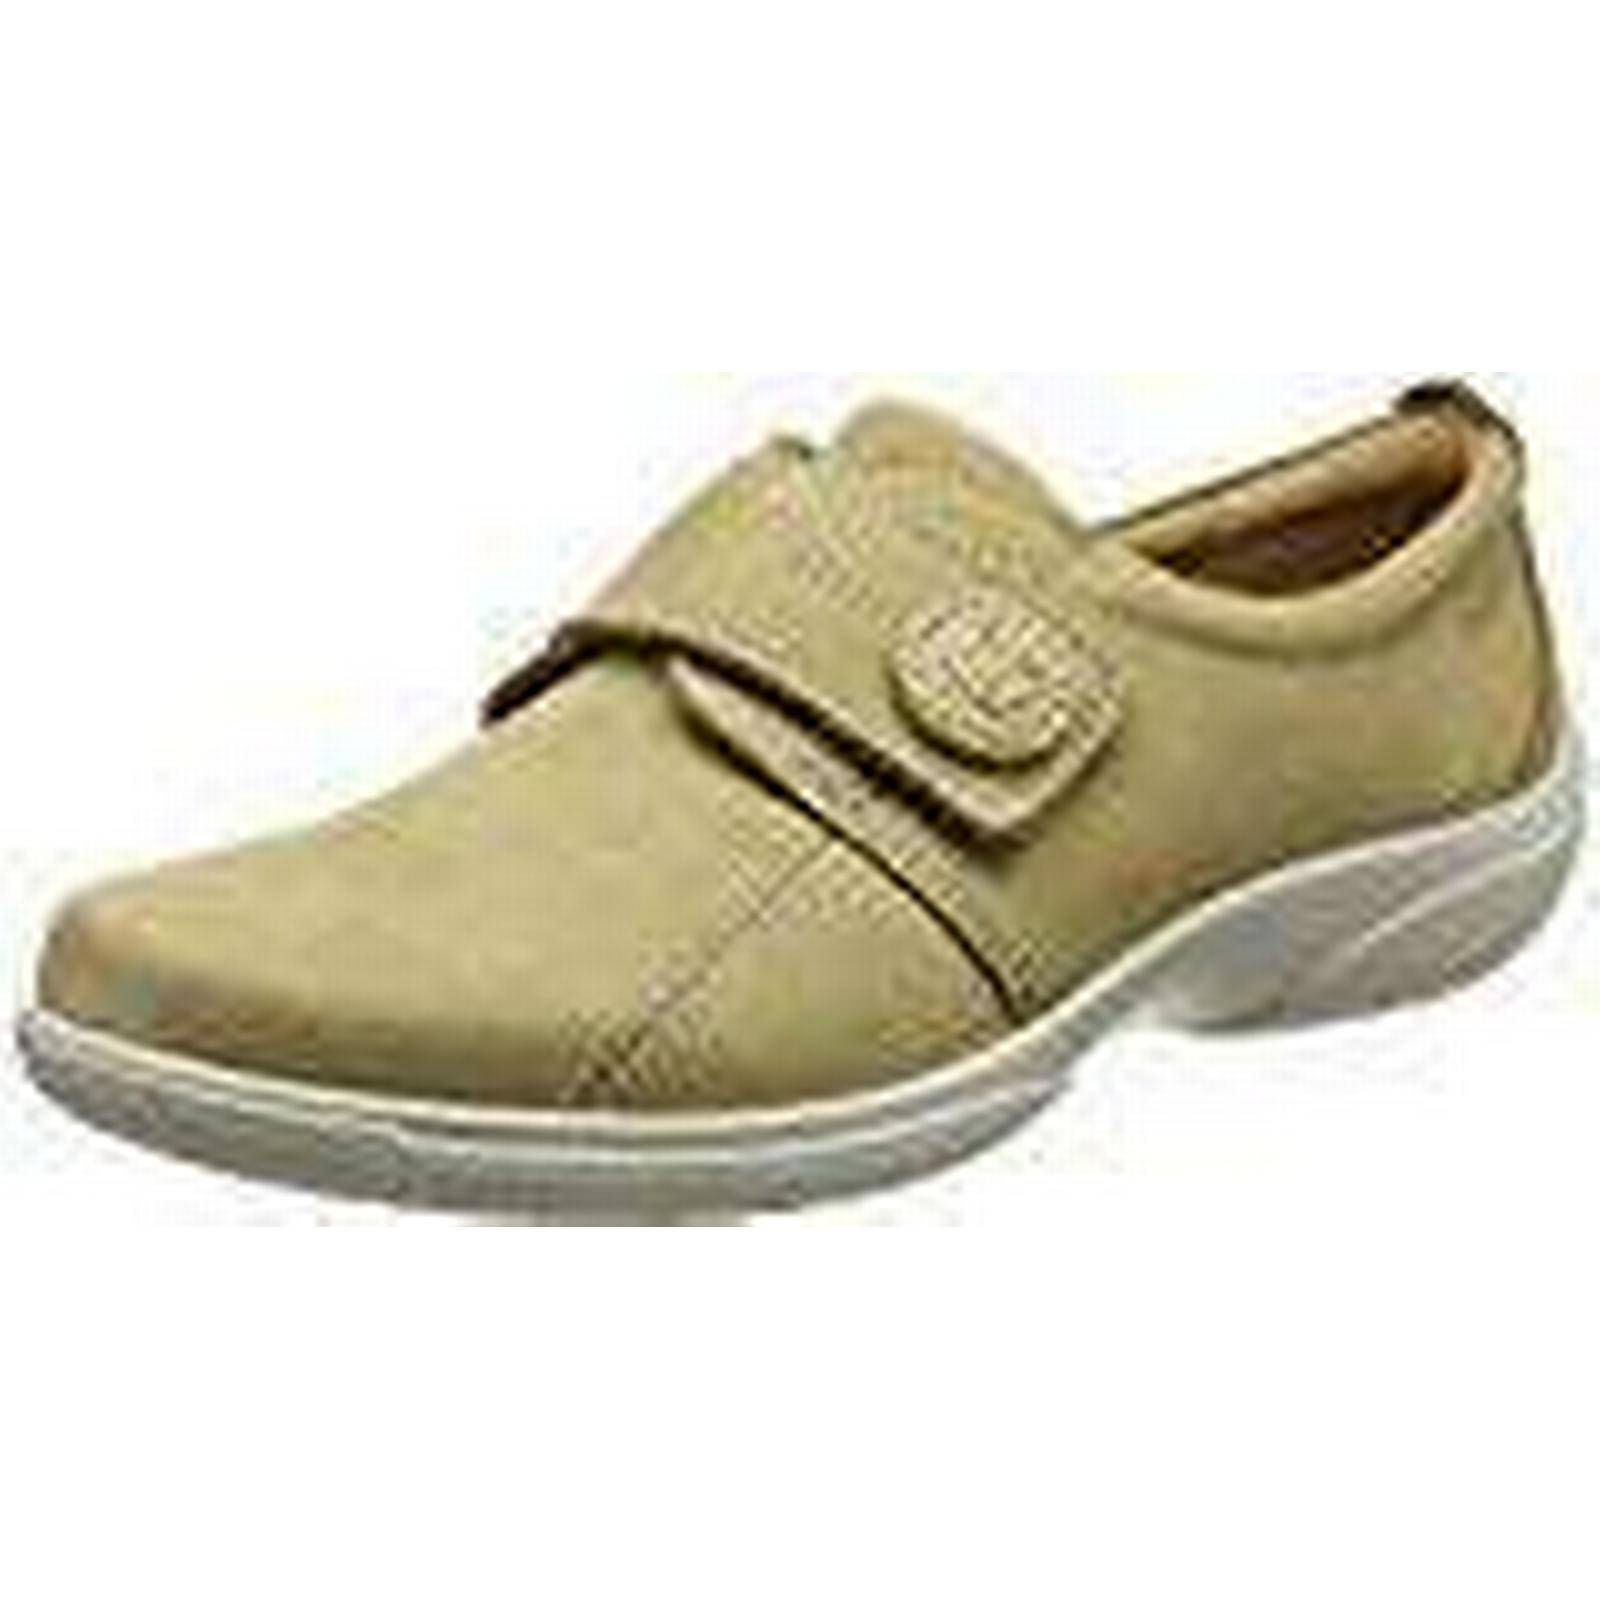 Hotter Women''s Sugar Boat 39 Shoes, Beige (Sand), 6 UK 39 Boat EU 48806d